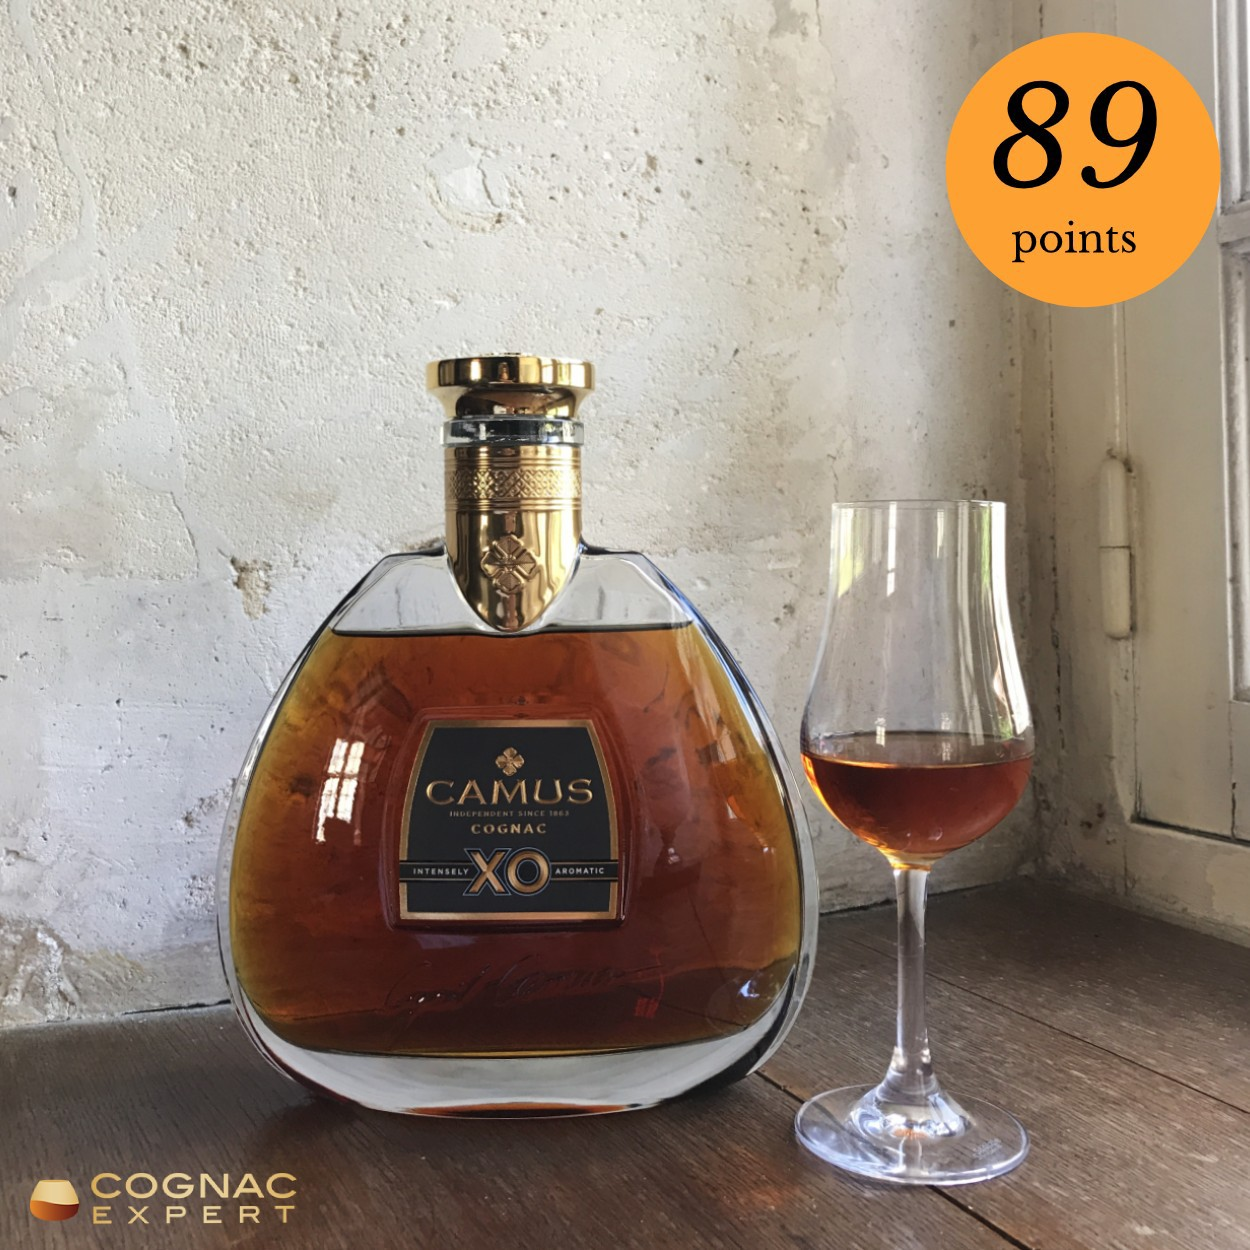 Came XO Cognac and glass